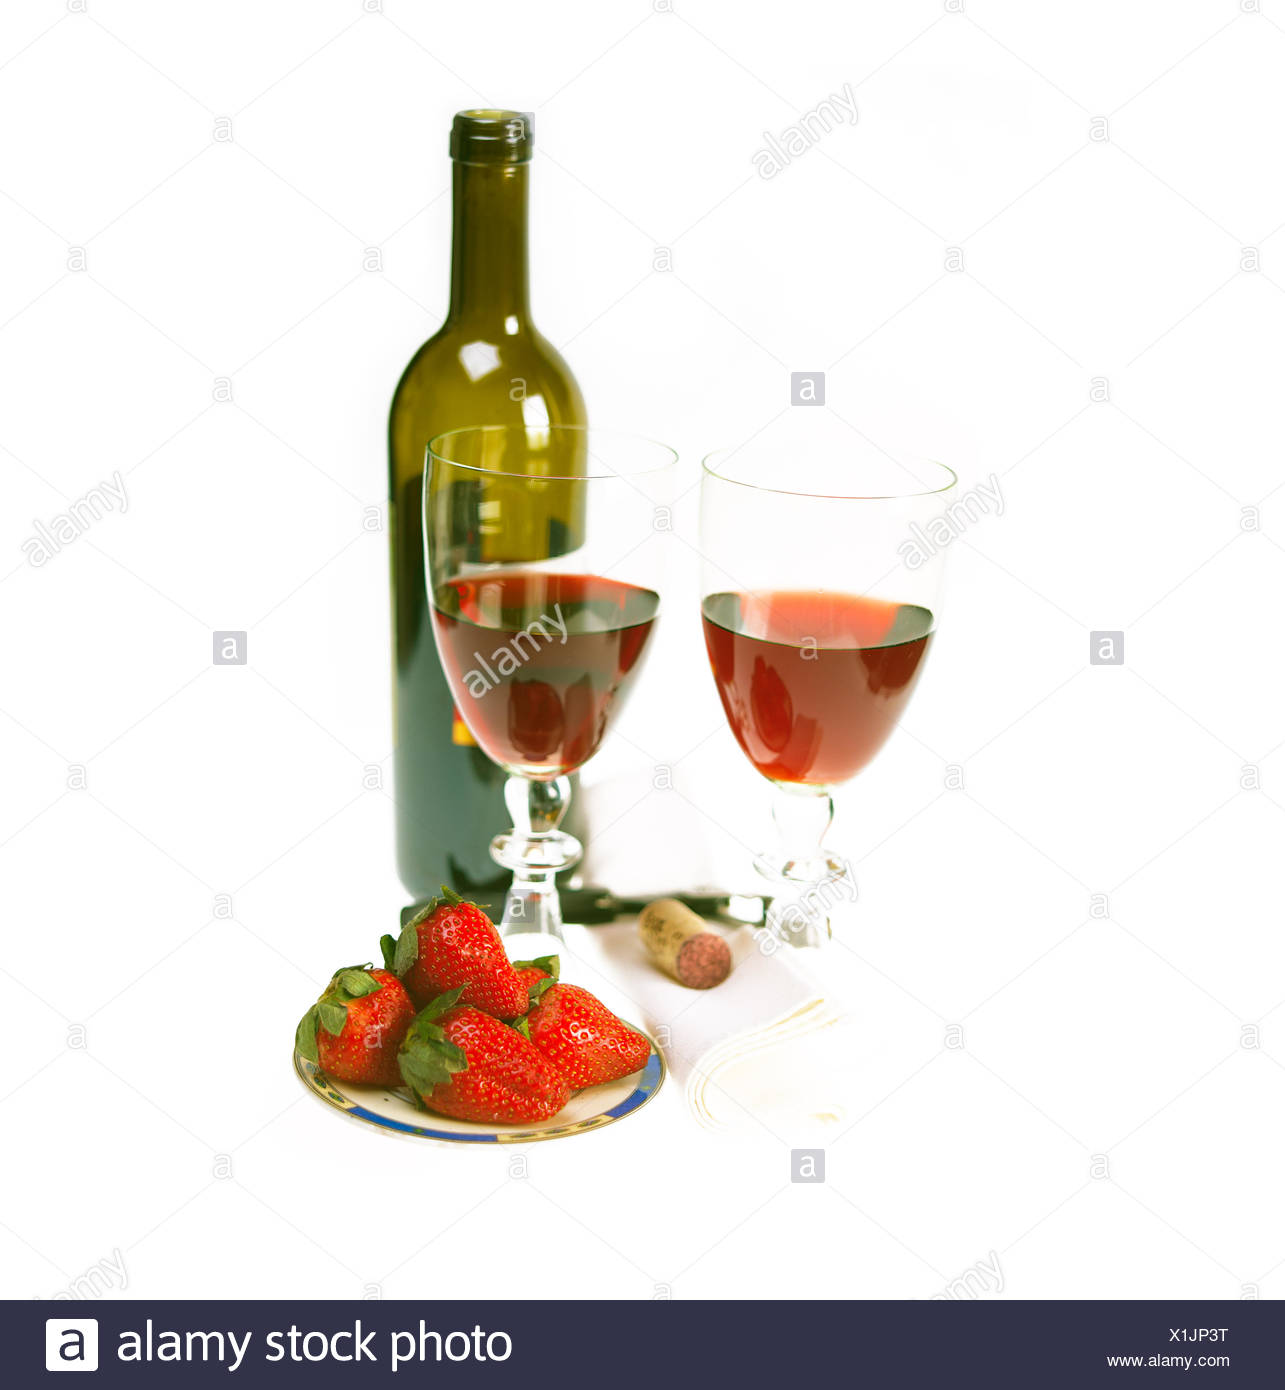 red wine bottle and two glasses with